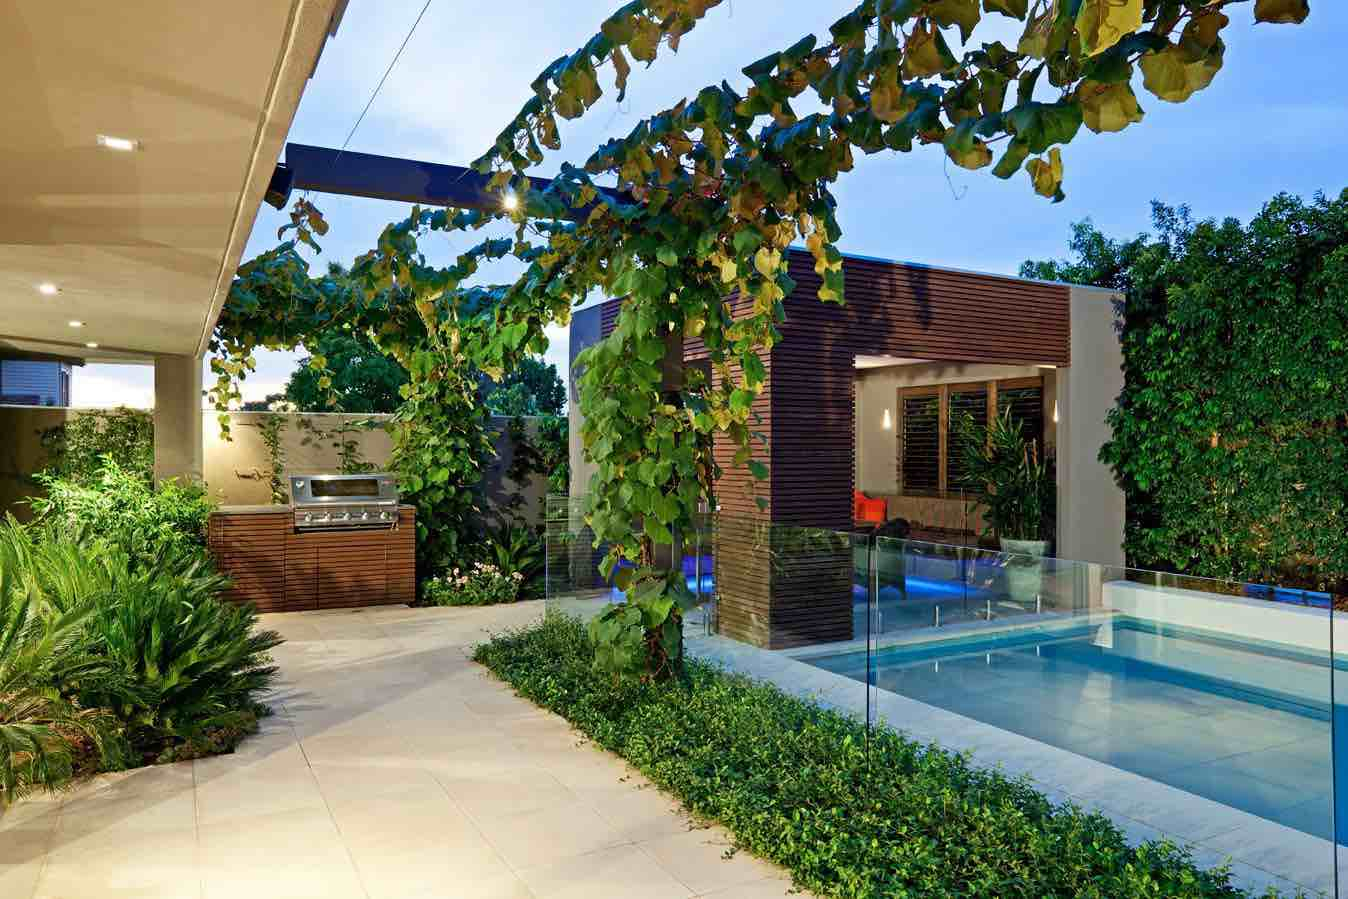 41 backyard design ideas for small yards worthminer for Small backyard plans